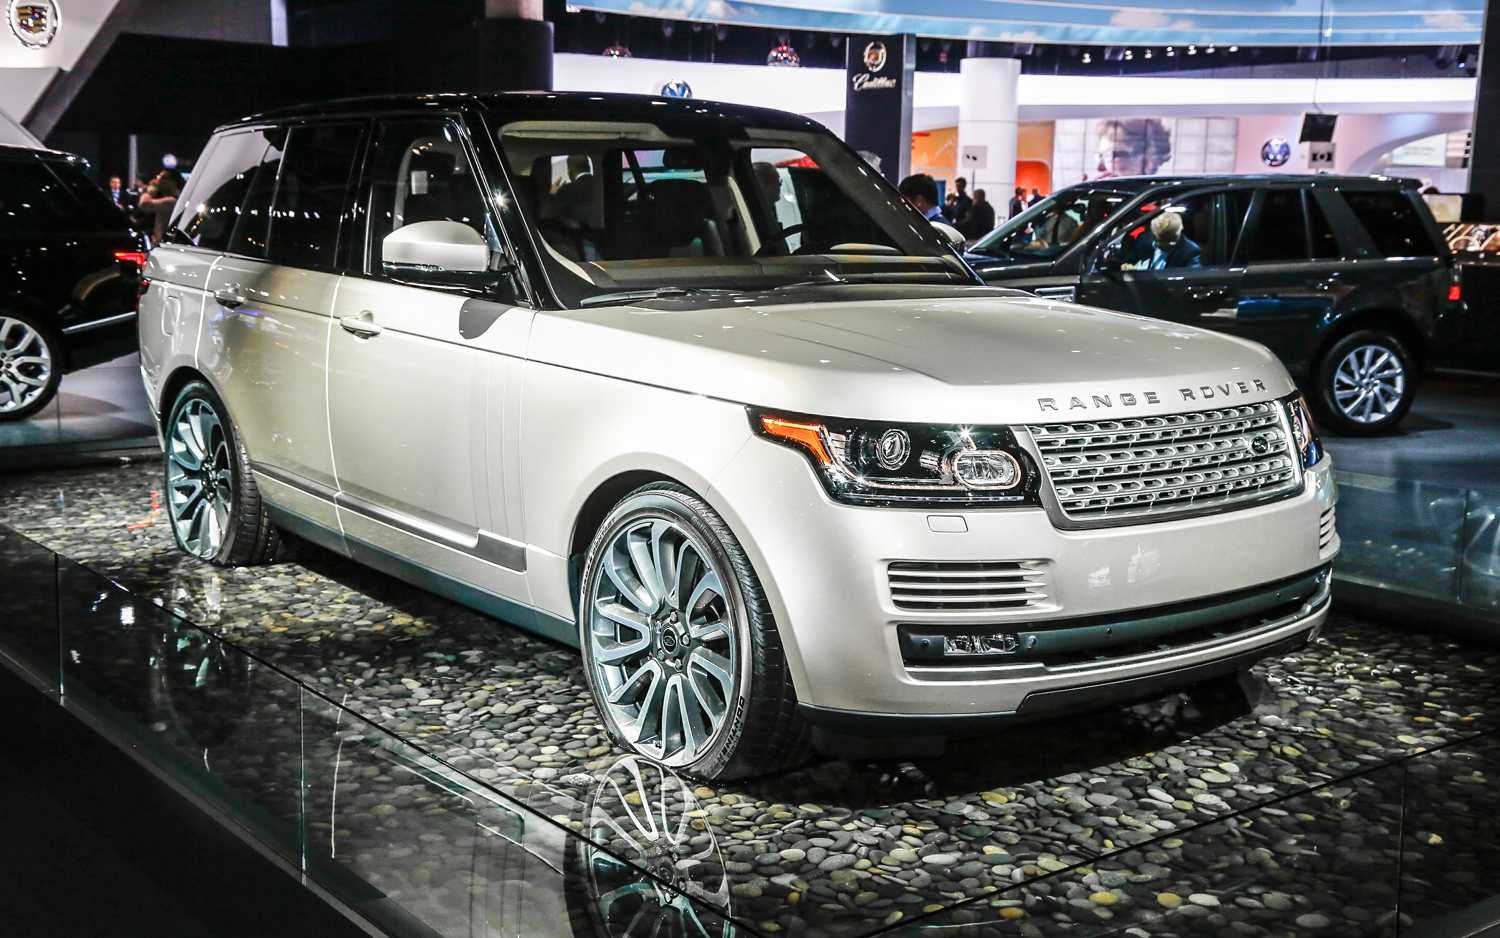 2013 land rover range rover first drive - motortrend